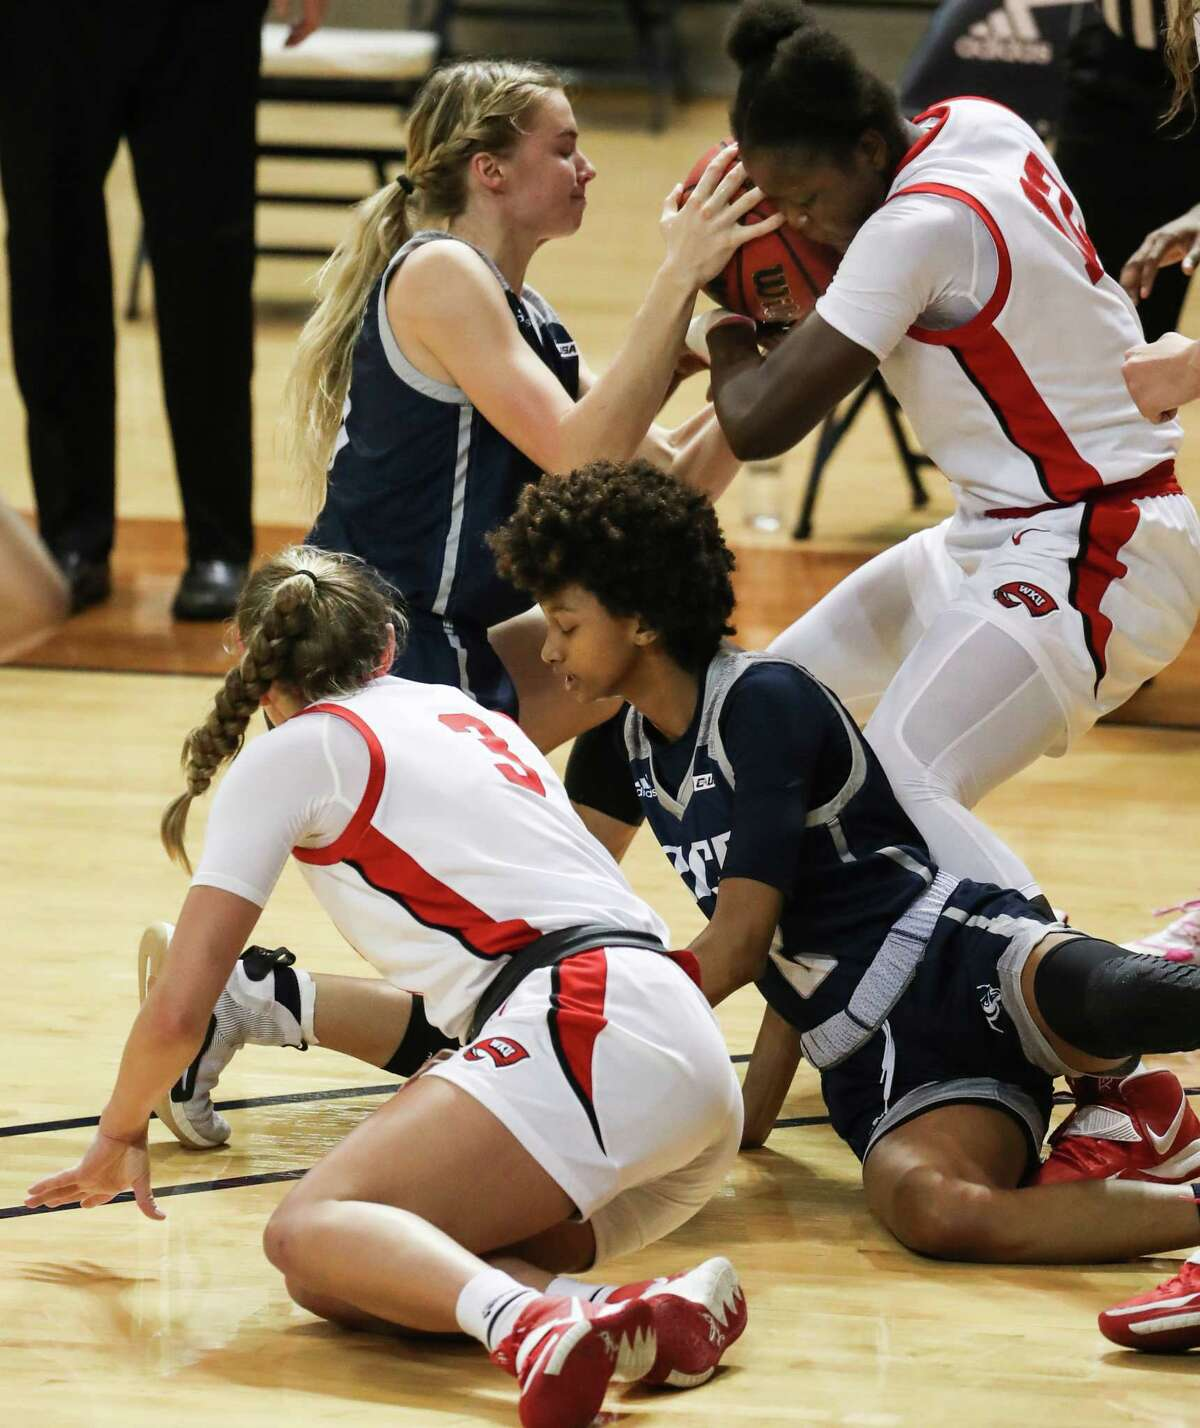 Rice guard Katelyn Crosthwait, top left and Western Kentucky's Fatou Pouye (12) fight for a looser ball over WKU's Ally Collett (3) and Rice's Sydne Wiggins (2) during the first half of an NCAA women's basketball game on Friday, Feb. 12, 2021, at Tudor Field House in Houston.